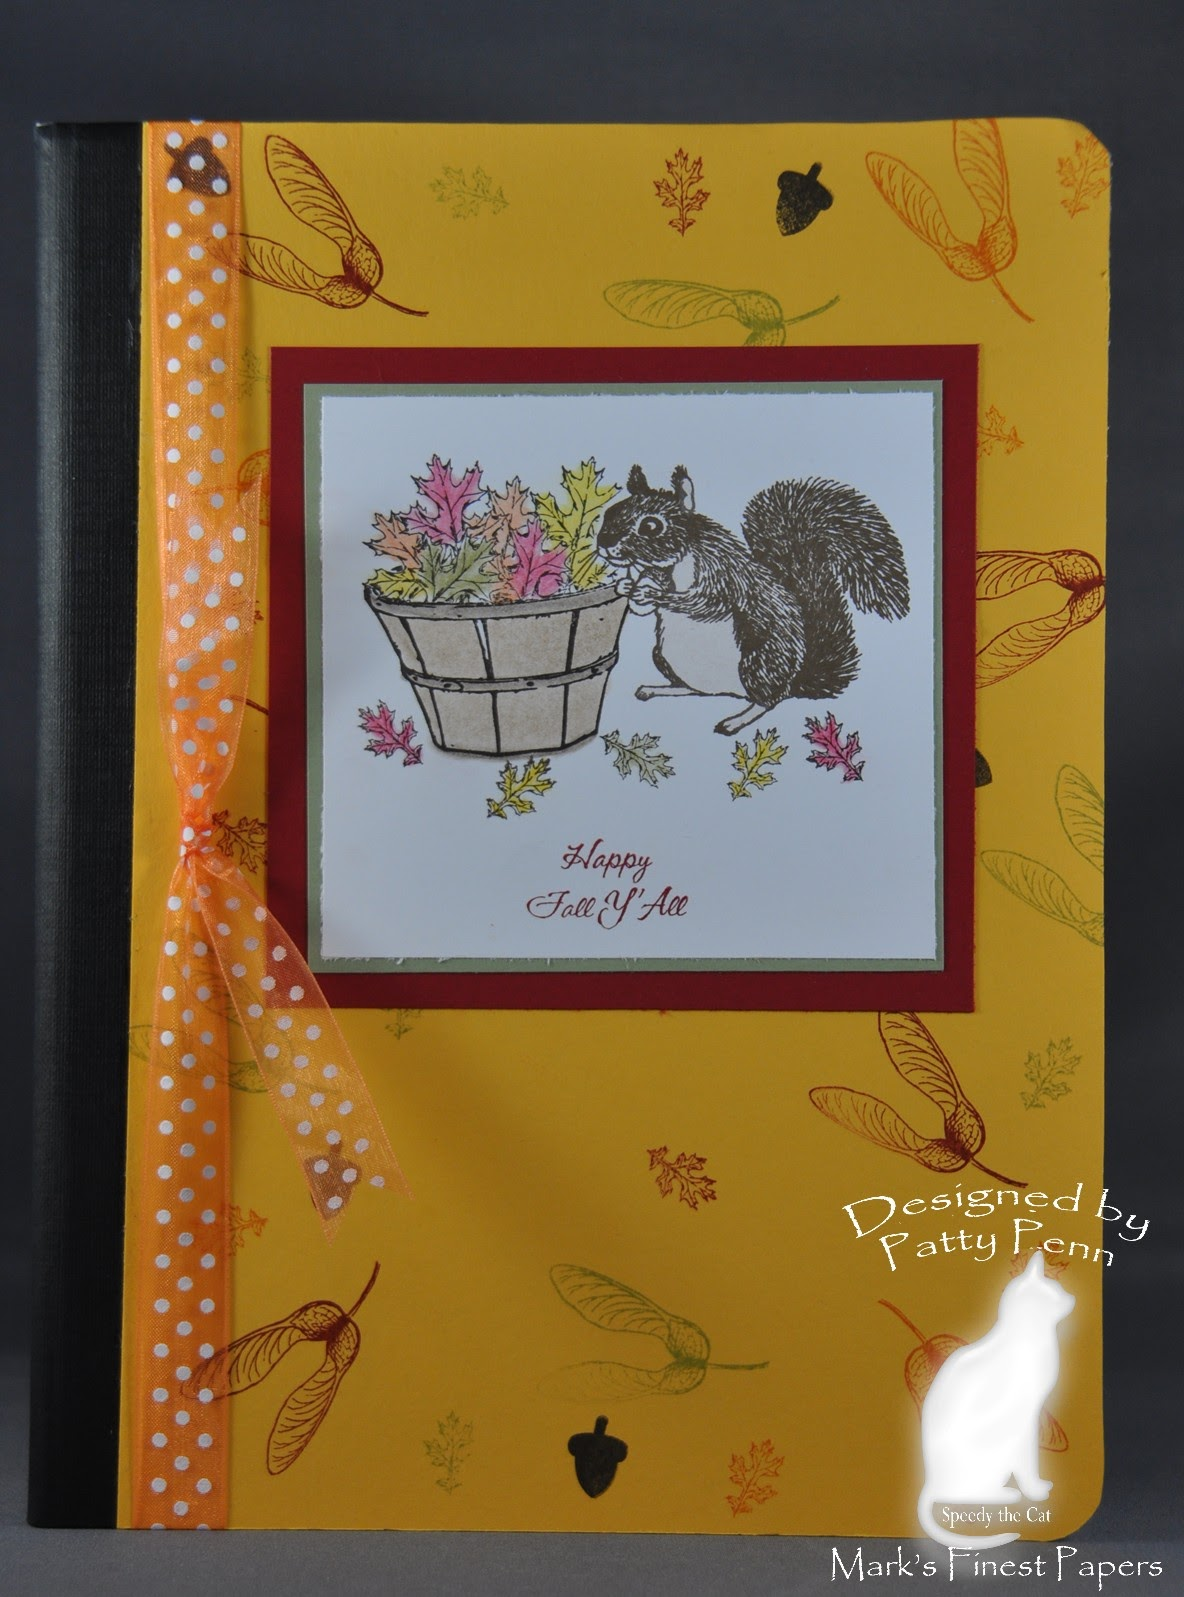 Winnie S Whims Amp My Crafts September 2010